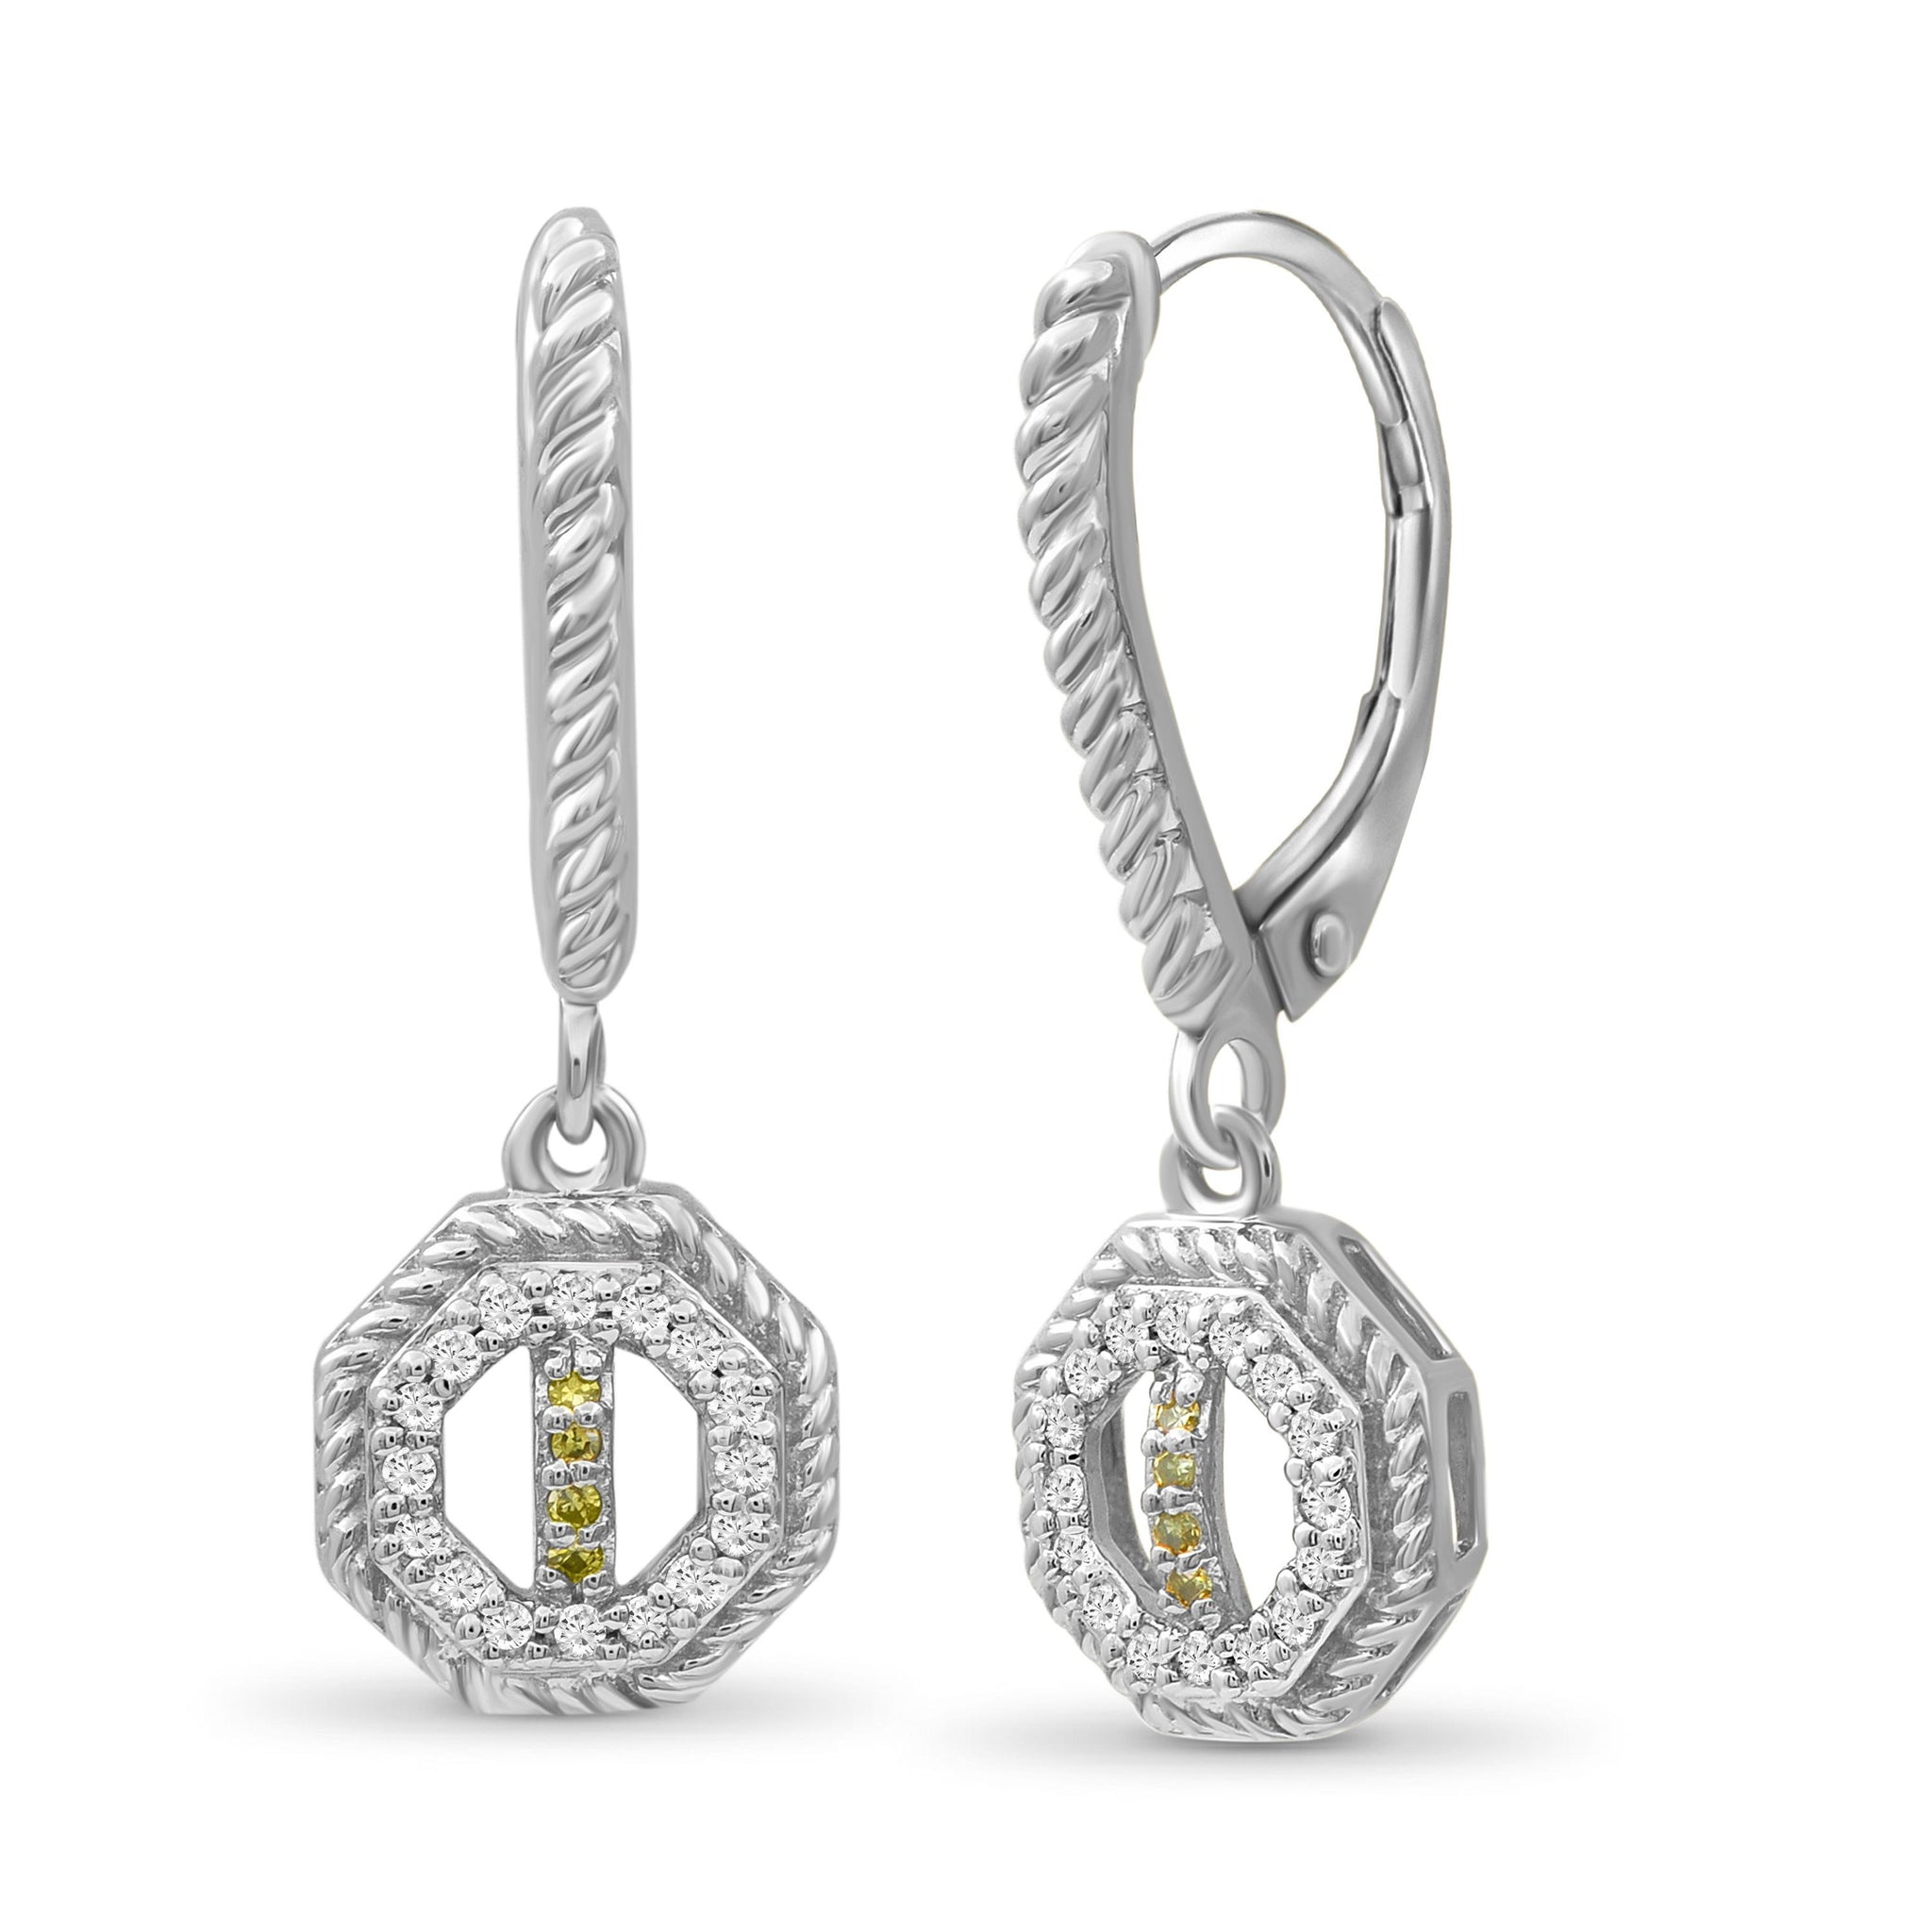 JewlersClub 1/7 Carat T.W. Yellow And White Diamond Sterling Silver Octagon Earrings - Assorted Colors